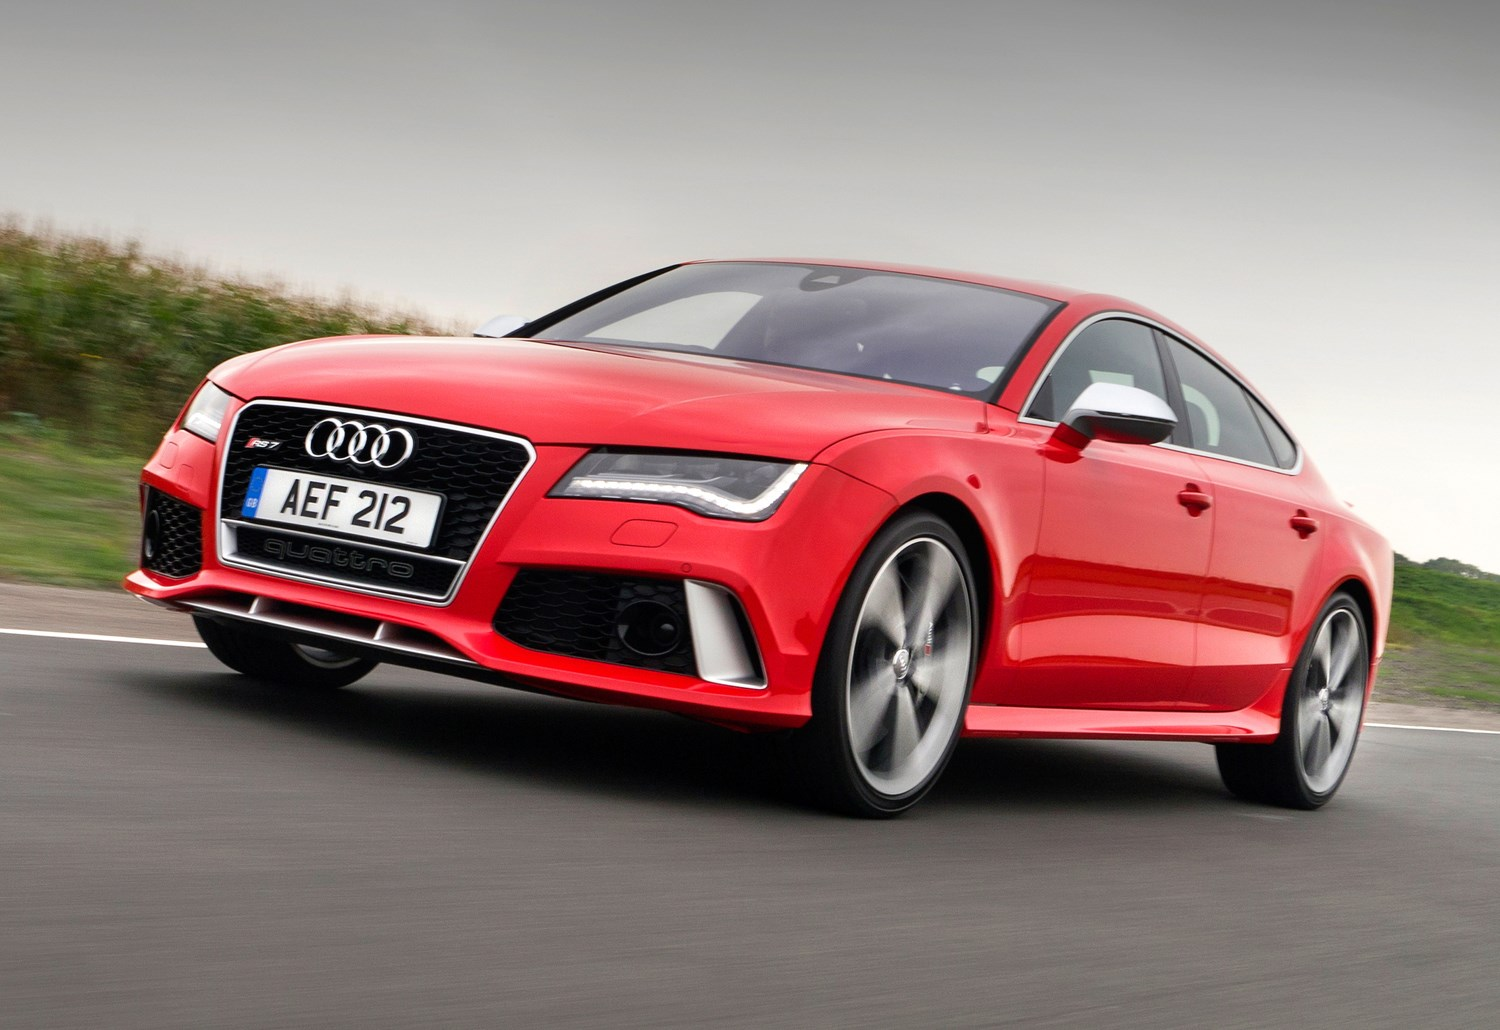 audi a7 rs7 sportback review 2013 parkers. Black Bedroom Furniture Sets. Home Design Ideas